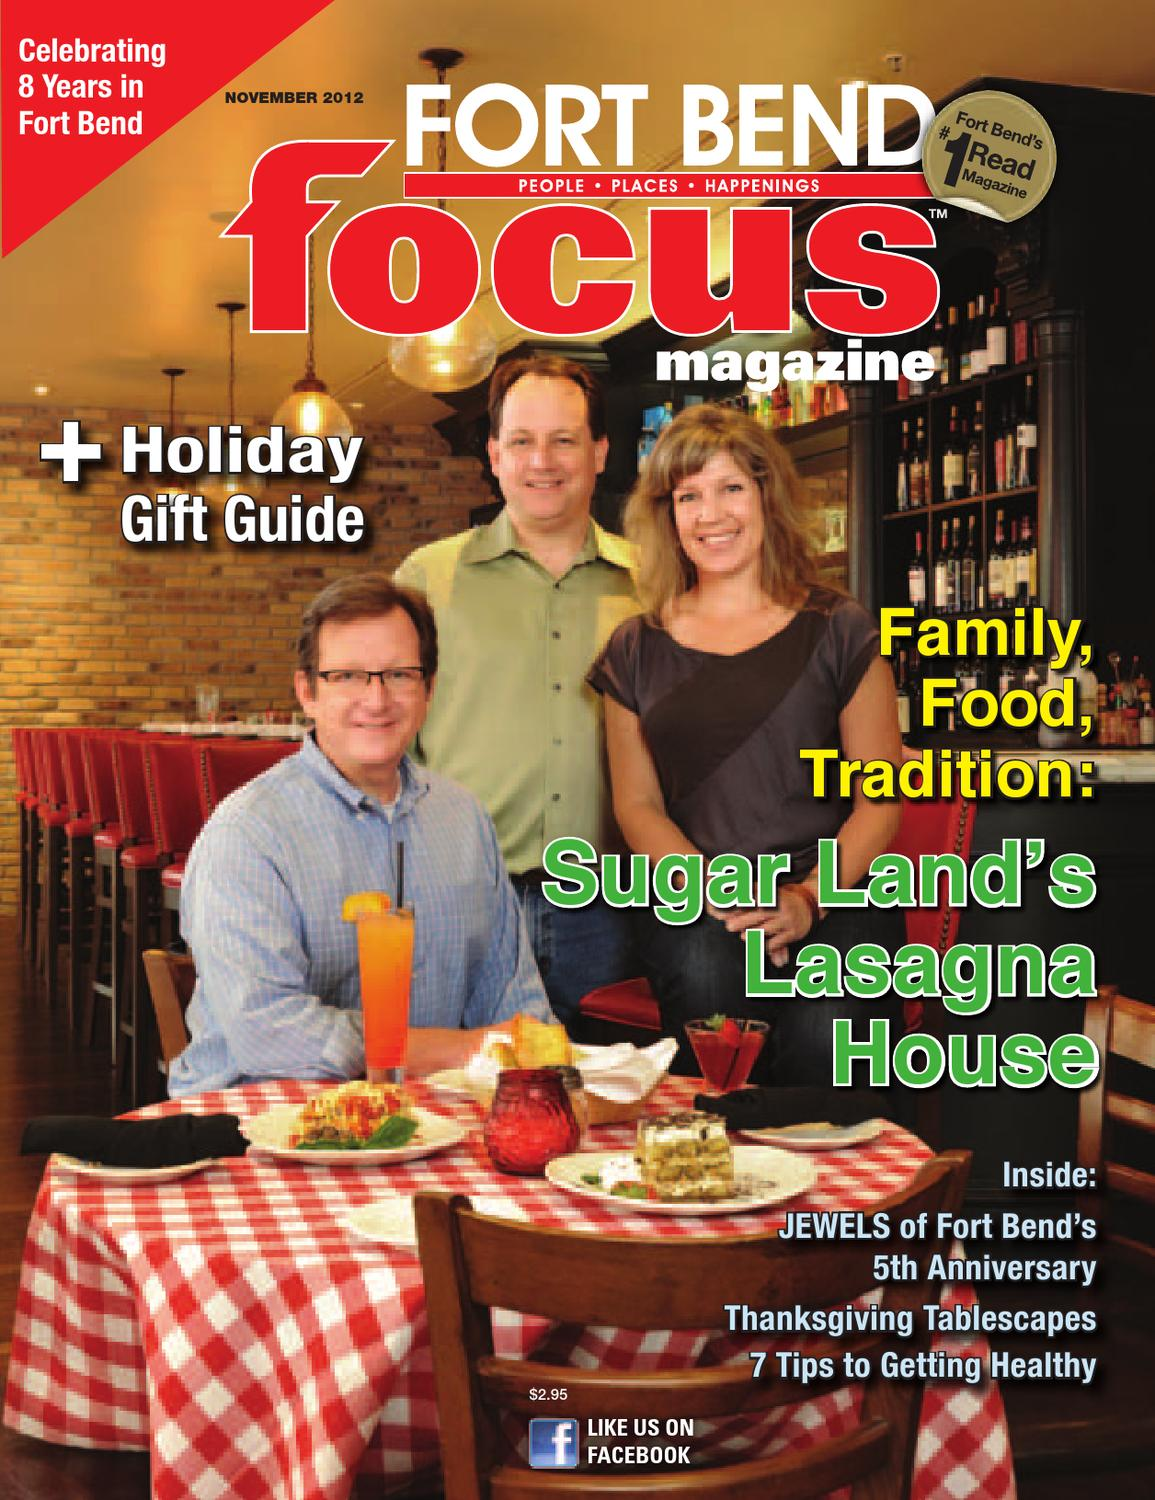 November 2012 - Fort Bend Focus Magazine - People • Places